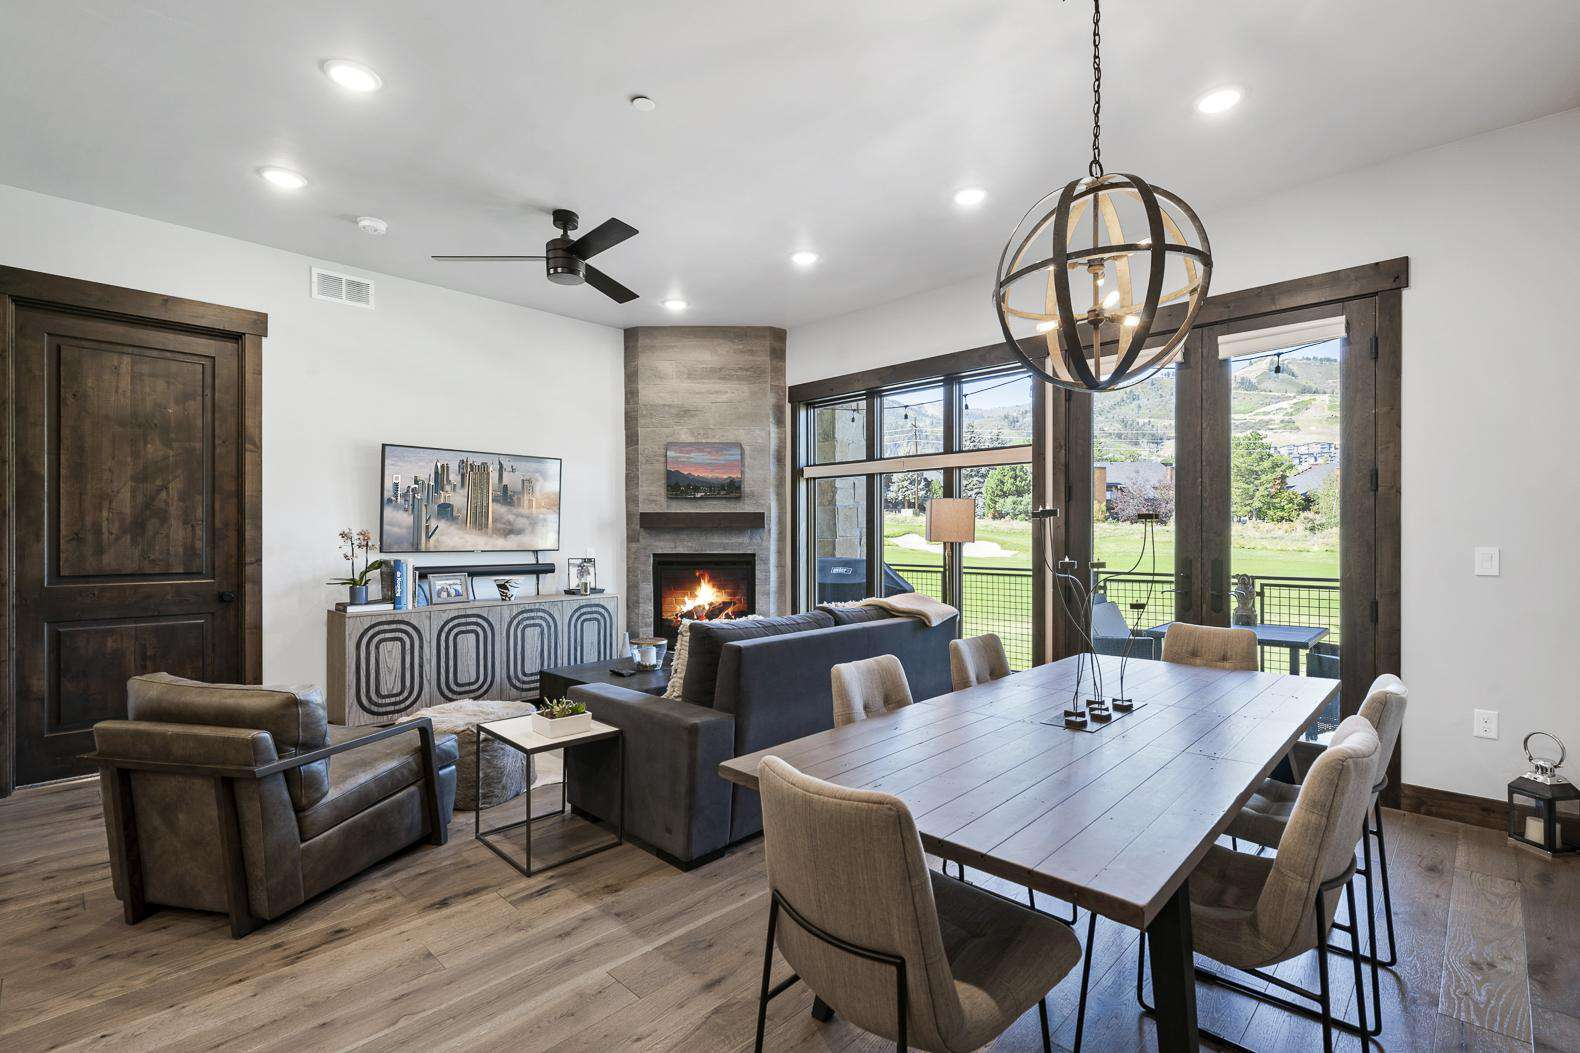 Living Room W/Dining Table